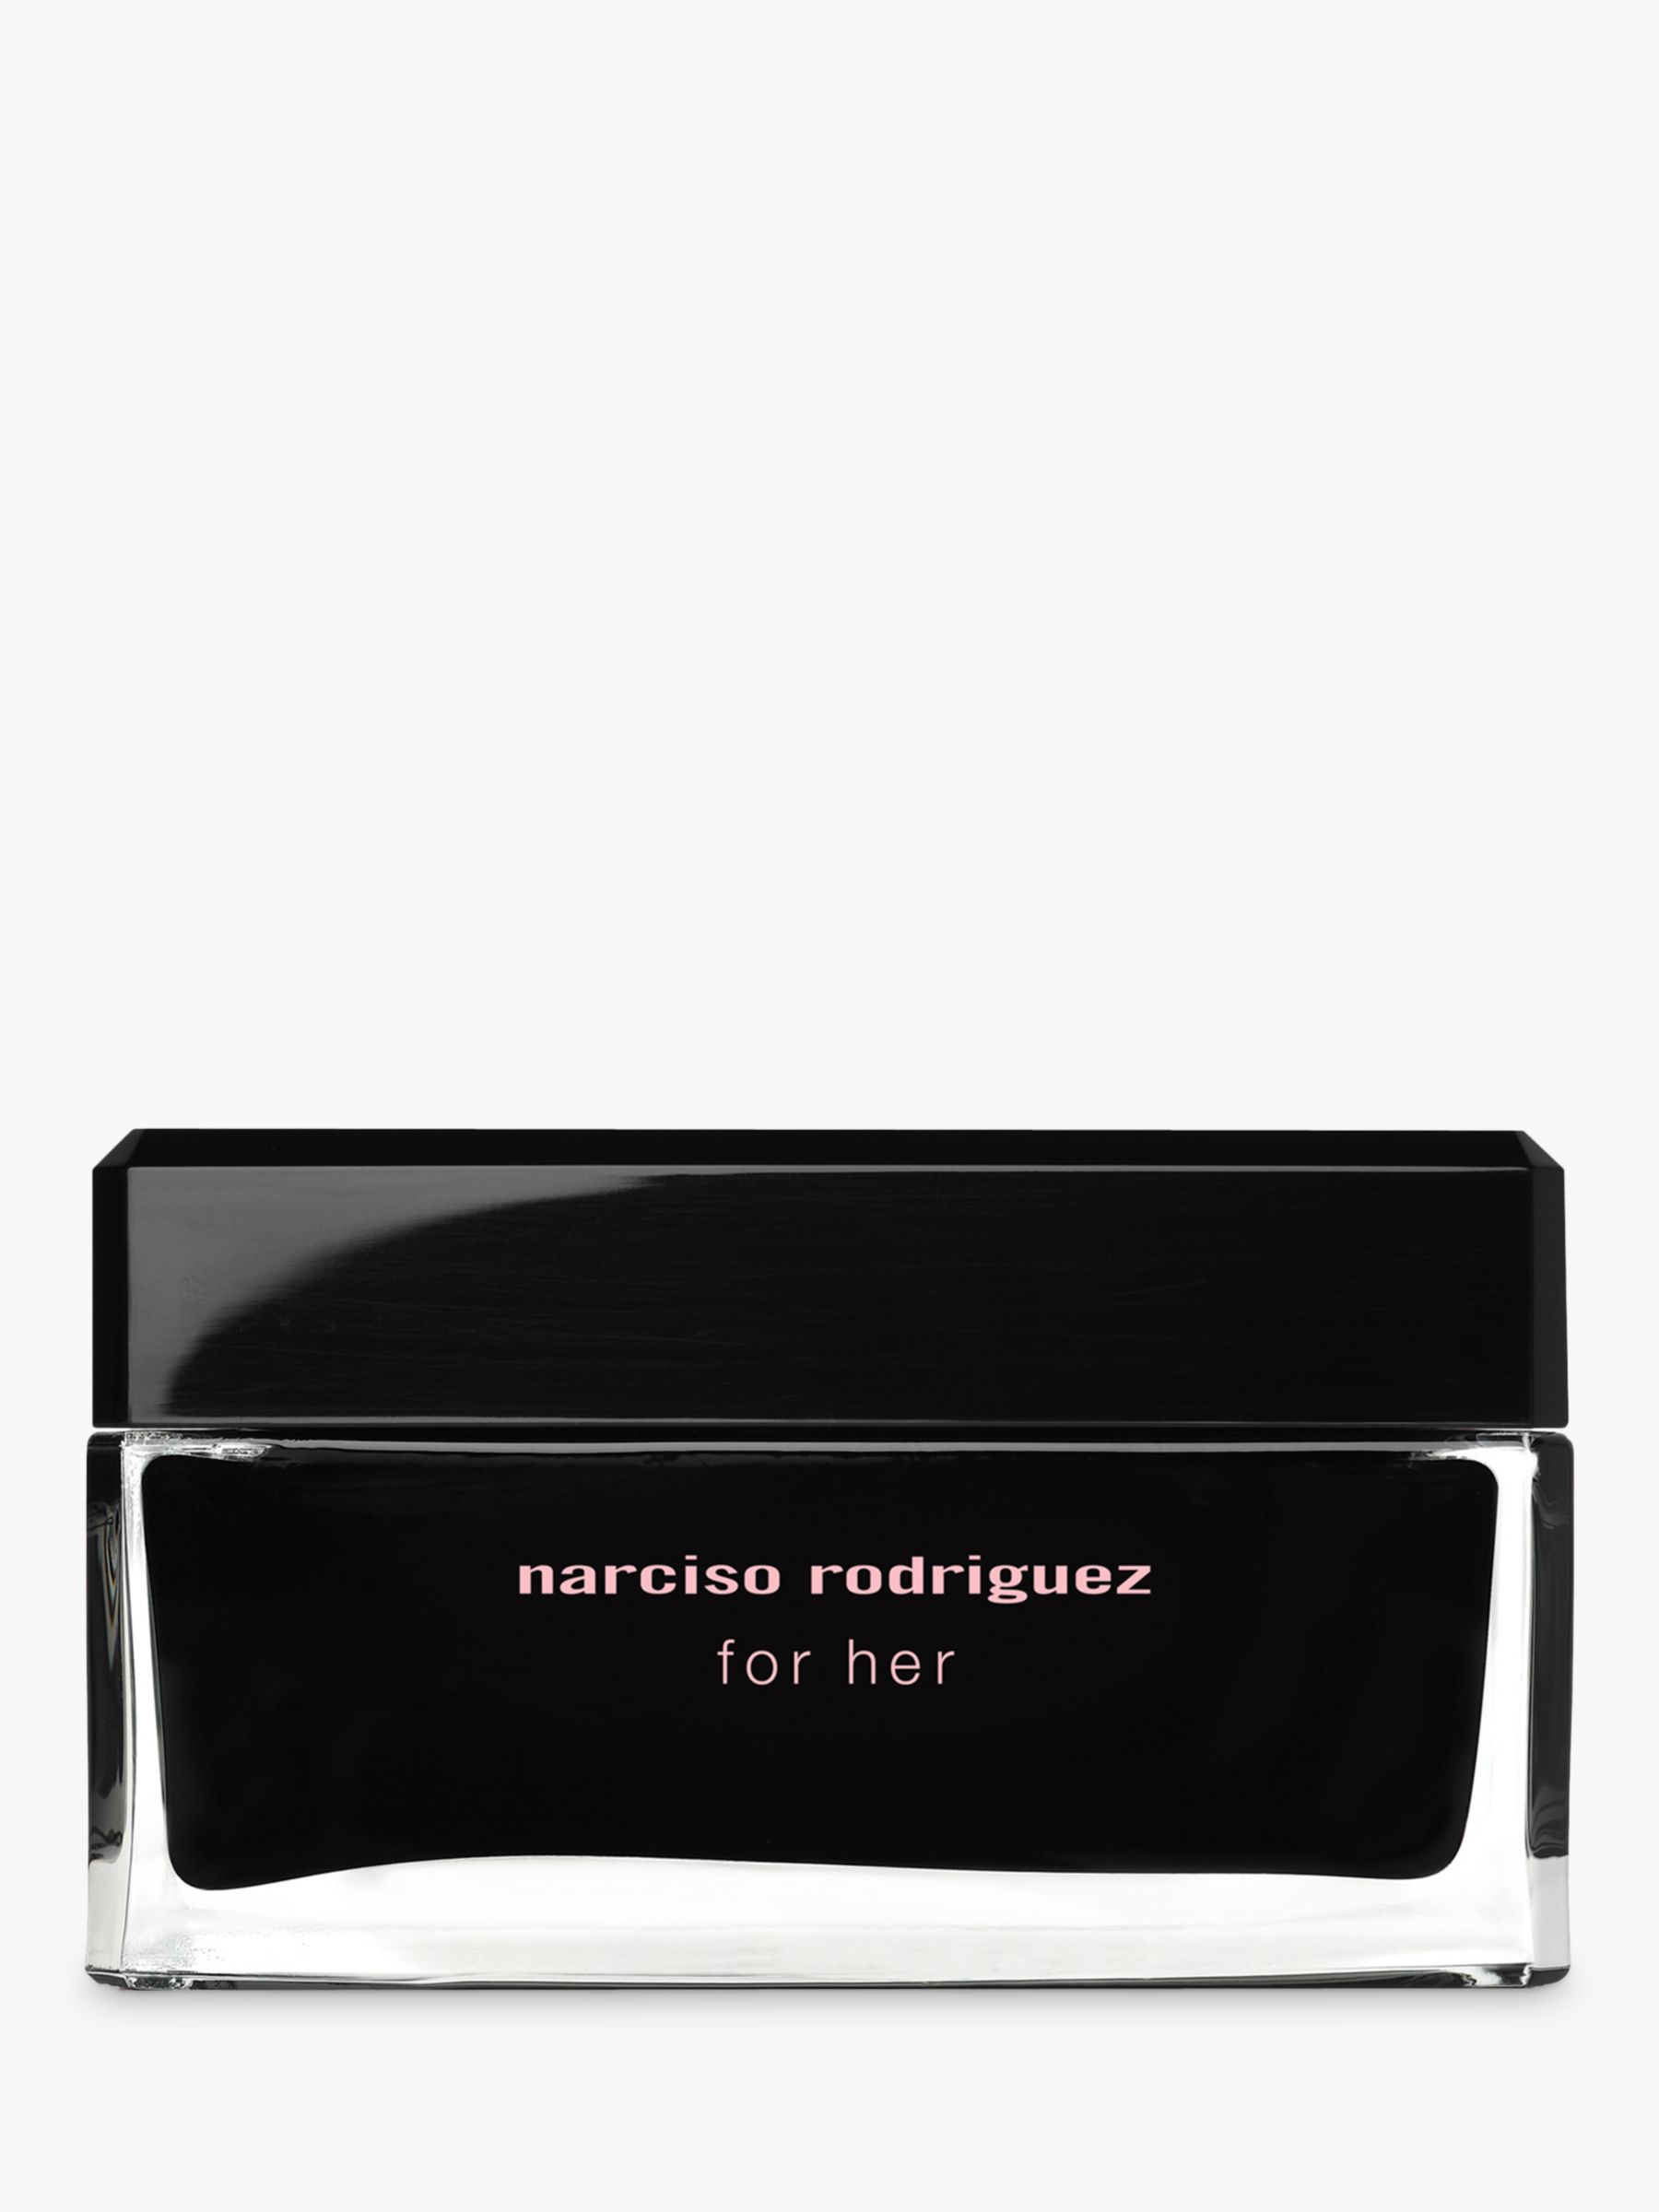 Narciso Rodriguez Narciso Rodriguez Body Cream, 150ml